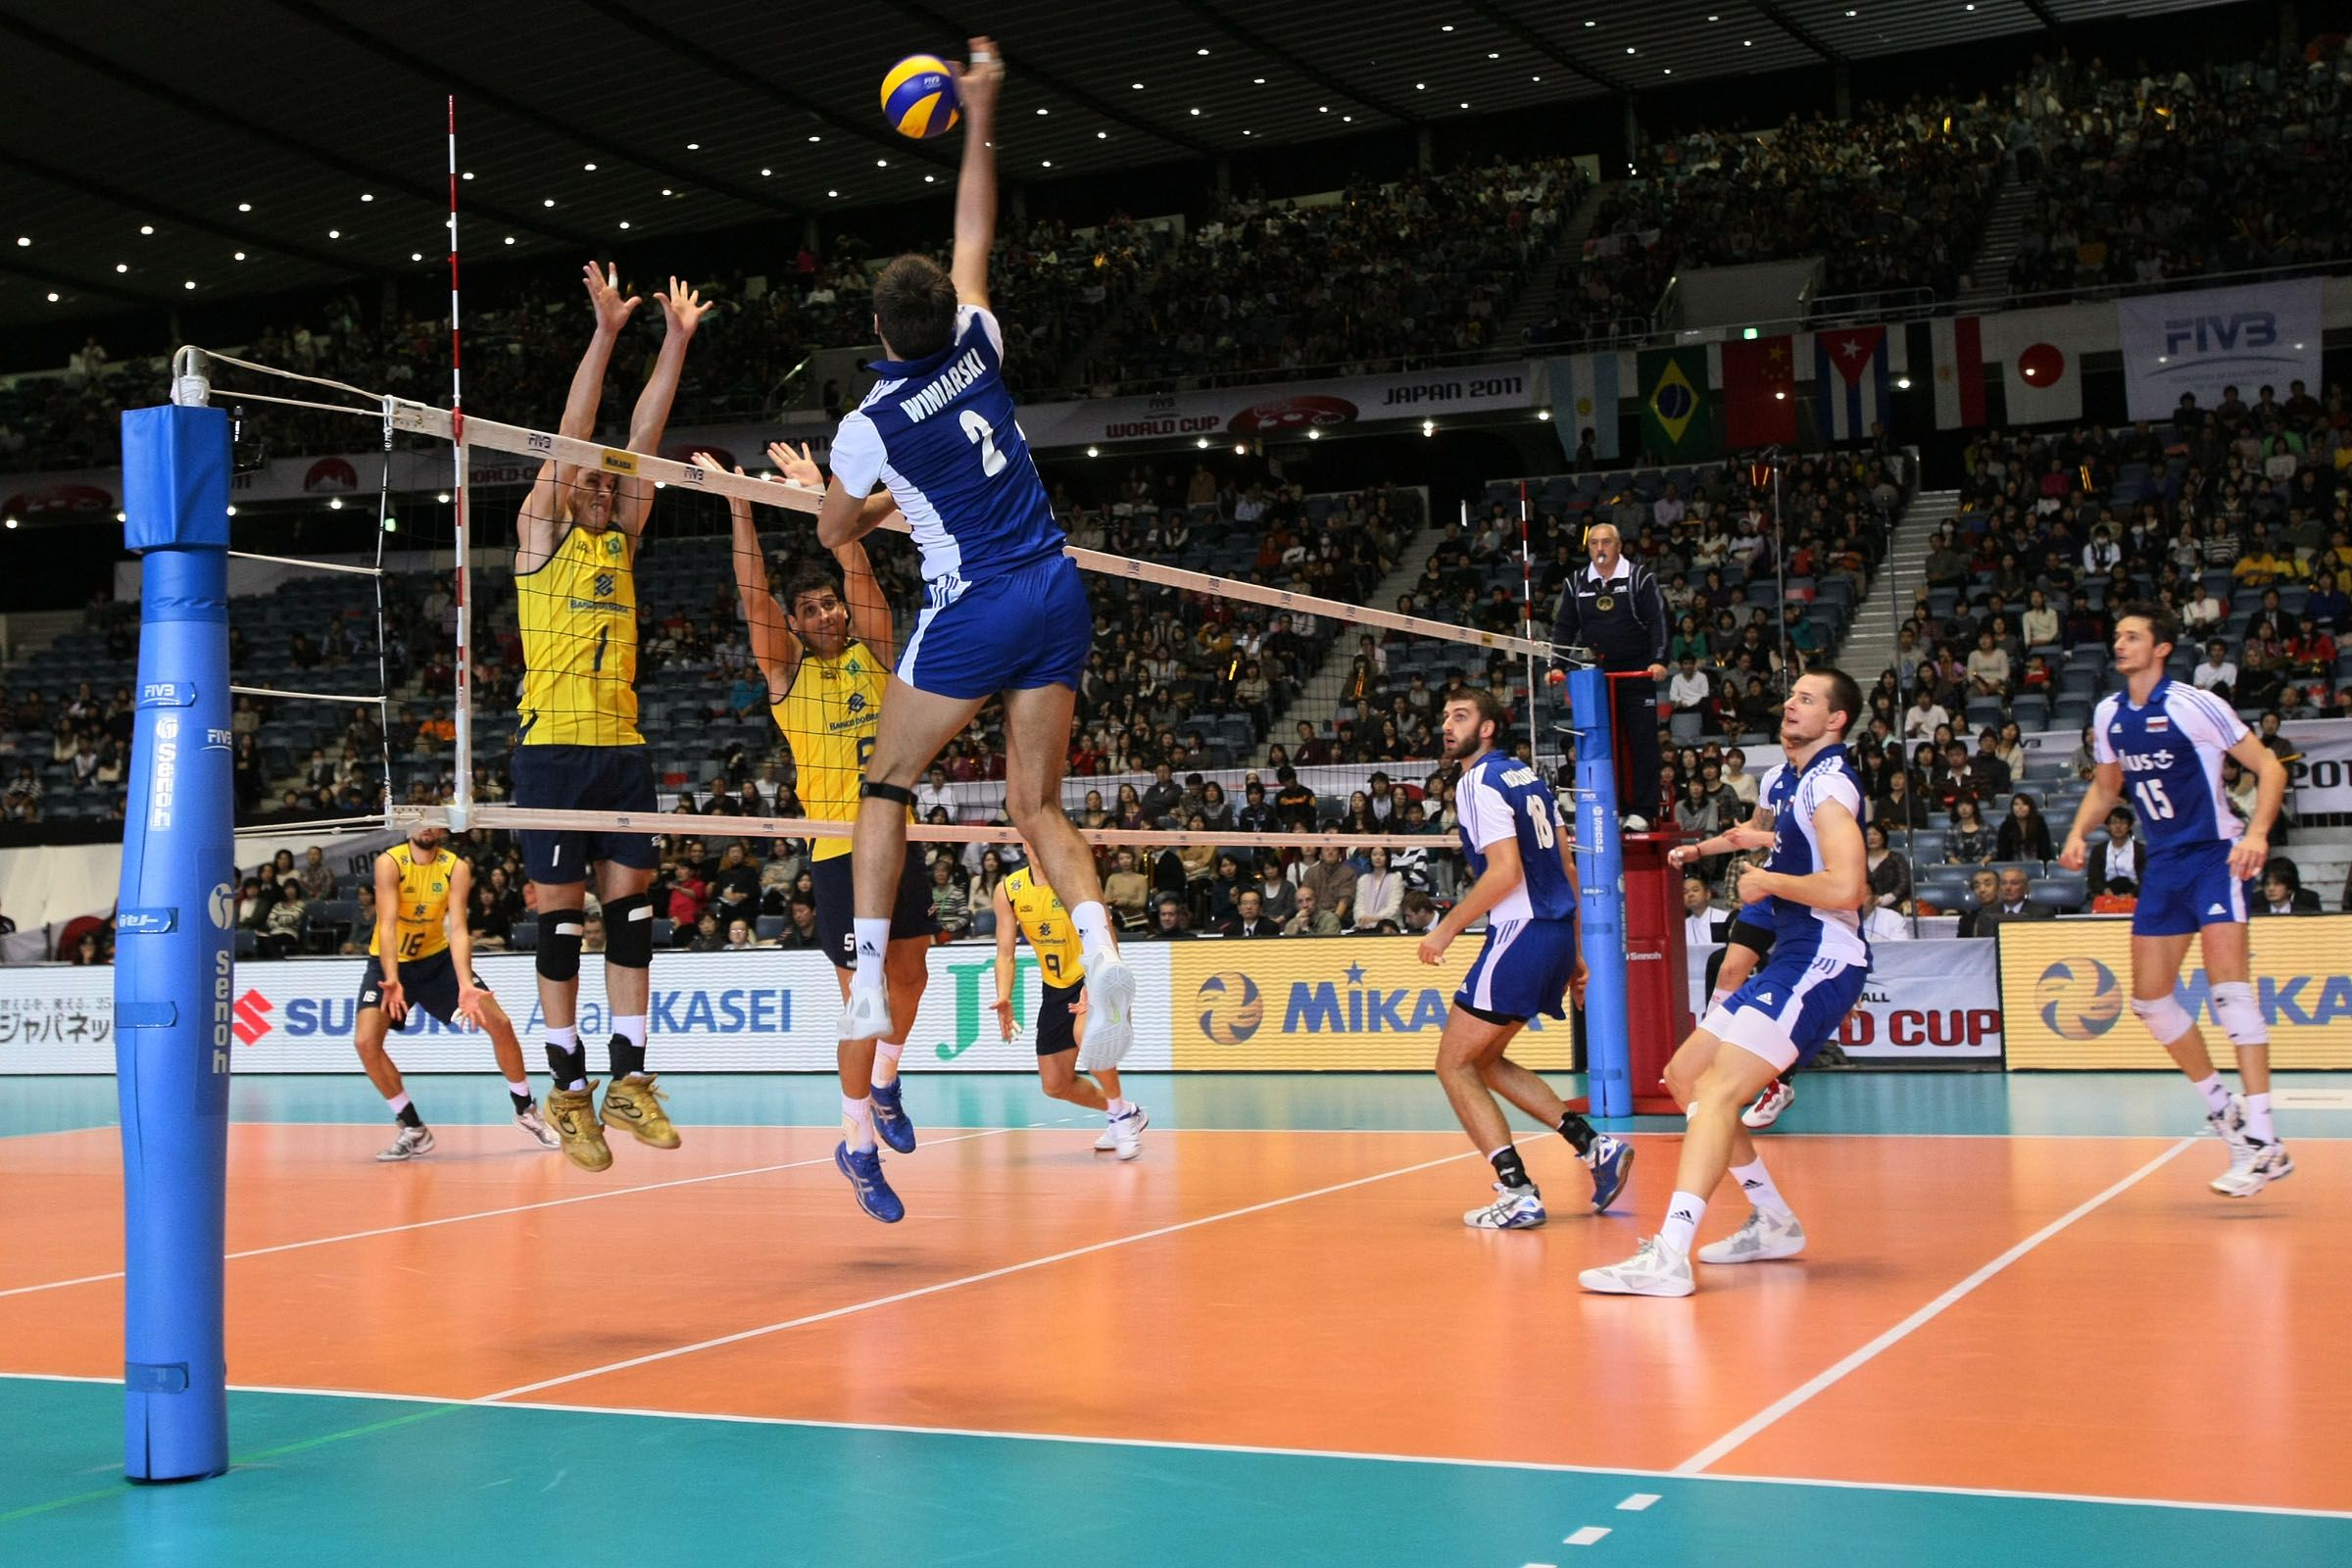 Michal Winiarski Spikes For Poland With A One Man Block For Brazil Volleyball Brazil Poland